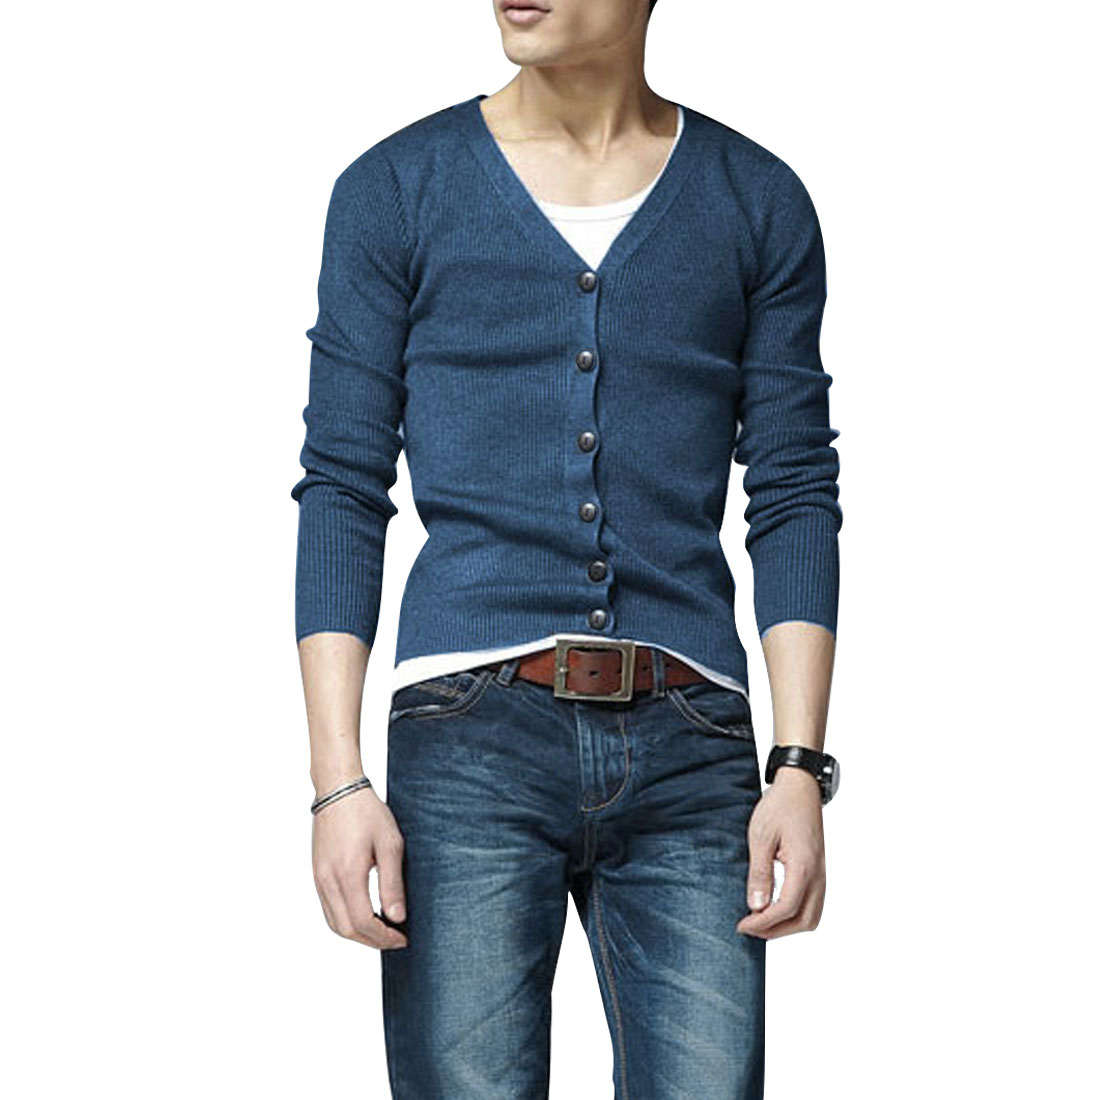 Men Simple Button Up Front V Neck Stretch Steel Blue Knit Shirt S